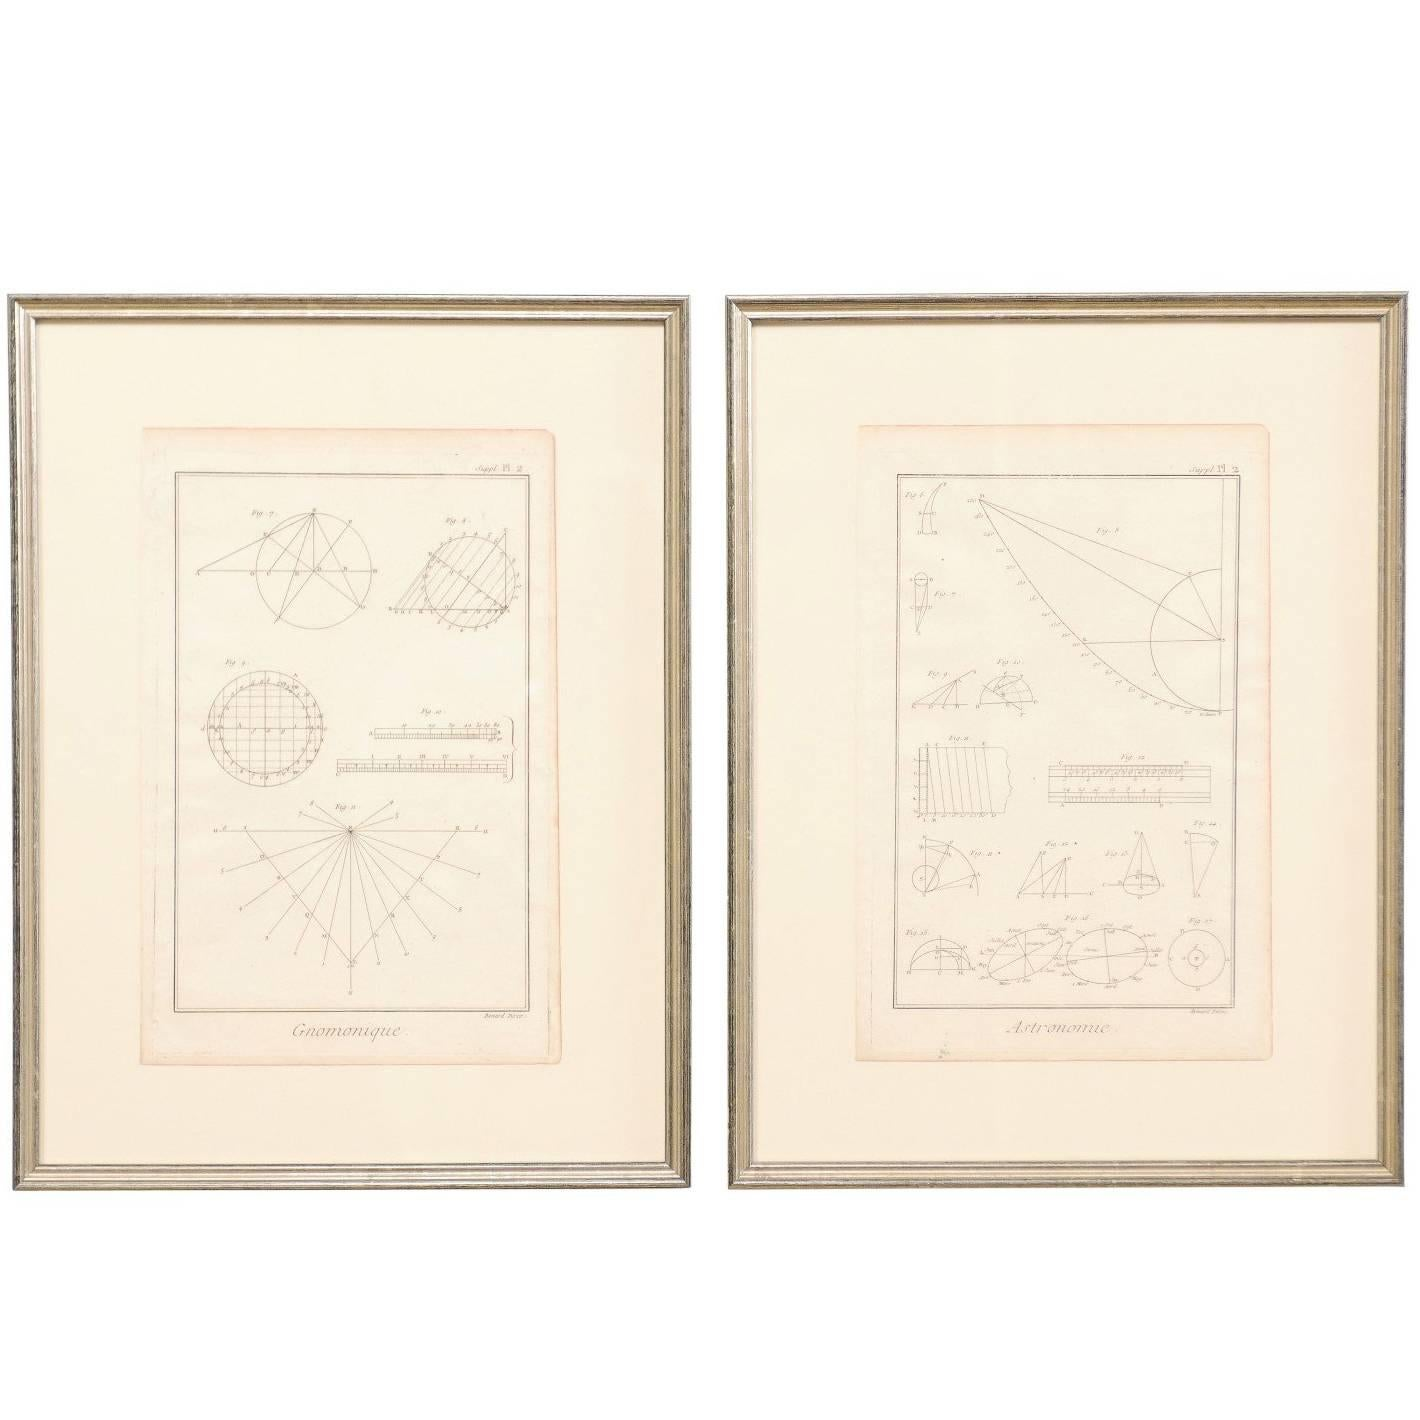 Pair of French Astronomy and Geometric Renderings by Artist Bernard Direx